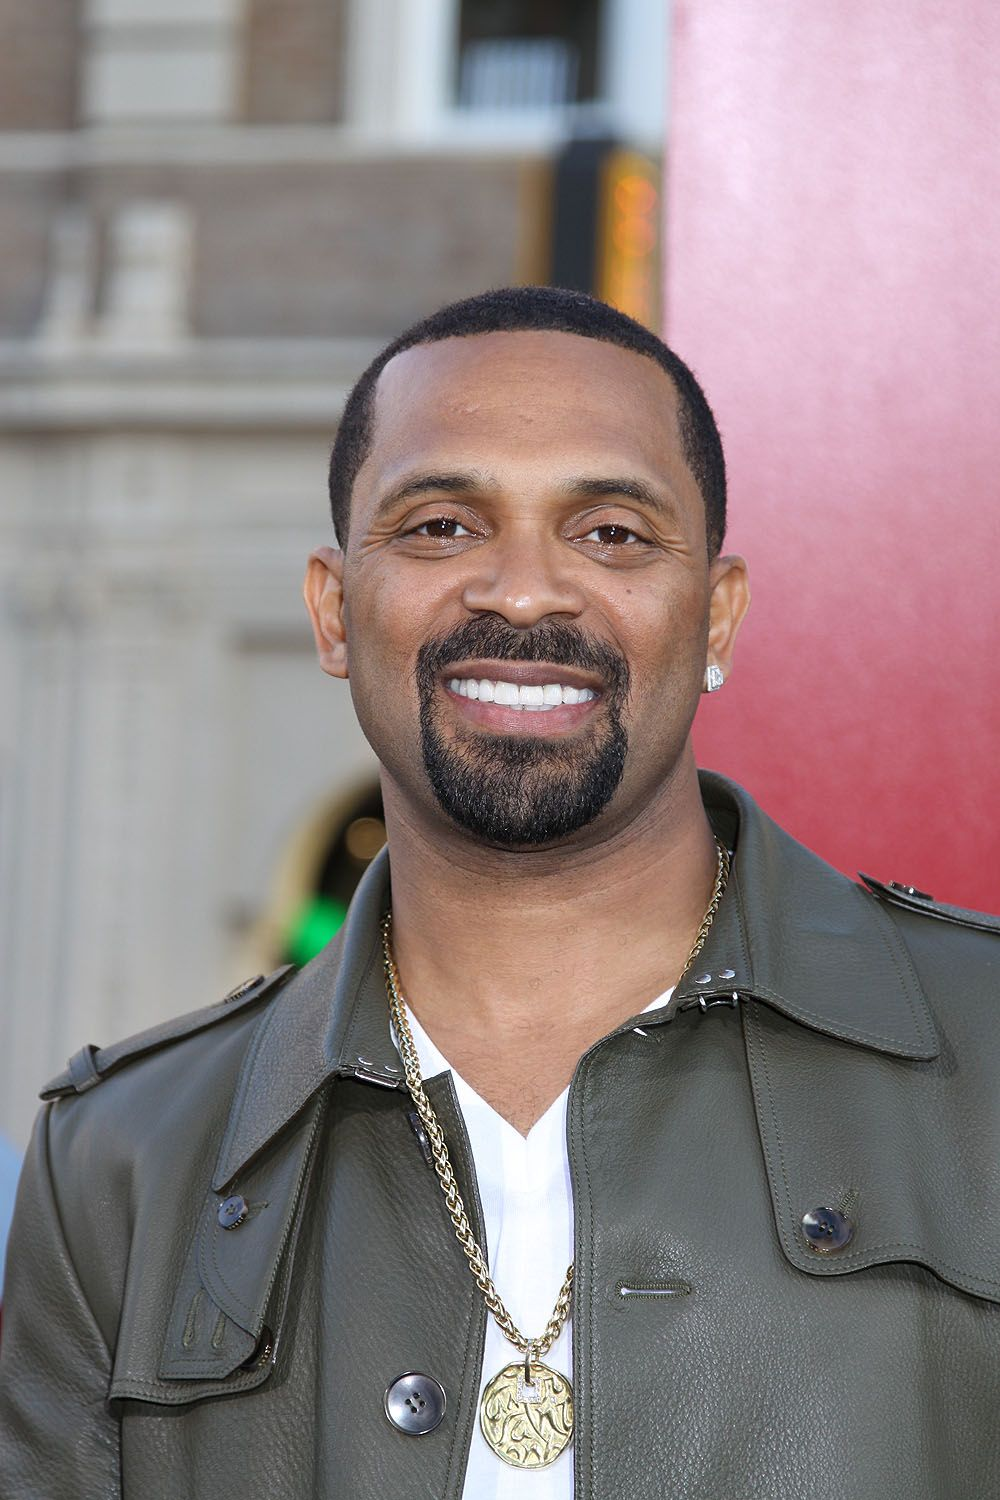 mike epps imdbmike epps movies, mike epps net worth, mike epps height, mike epps wiki, mike epps instagram, mike epps films, mike epps rap, mike epps stand up, mike epps omar epps, mike epps eminem, mike epps meet the black, mike epps, mike epps tickets, mike epps new movie, mike epps imdb, mike epps youtube, mike epps netflix, mike epps comedy tour, mike epps family, mike epps the cuddler